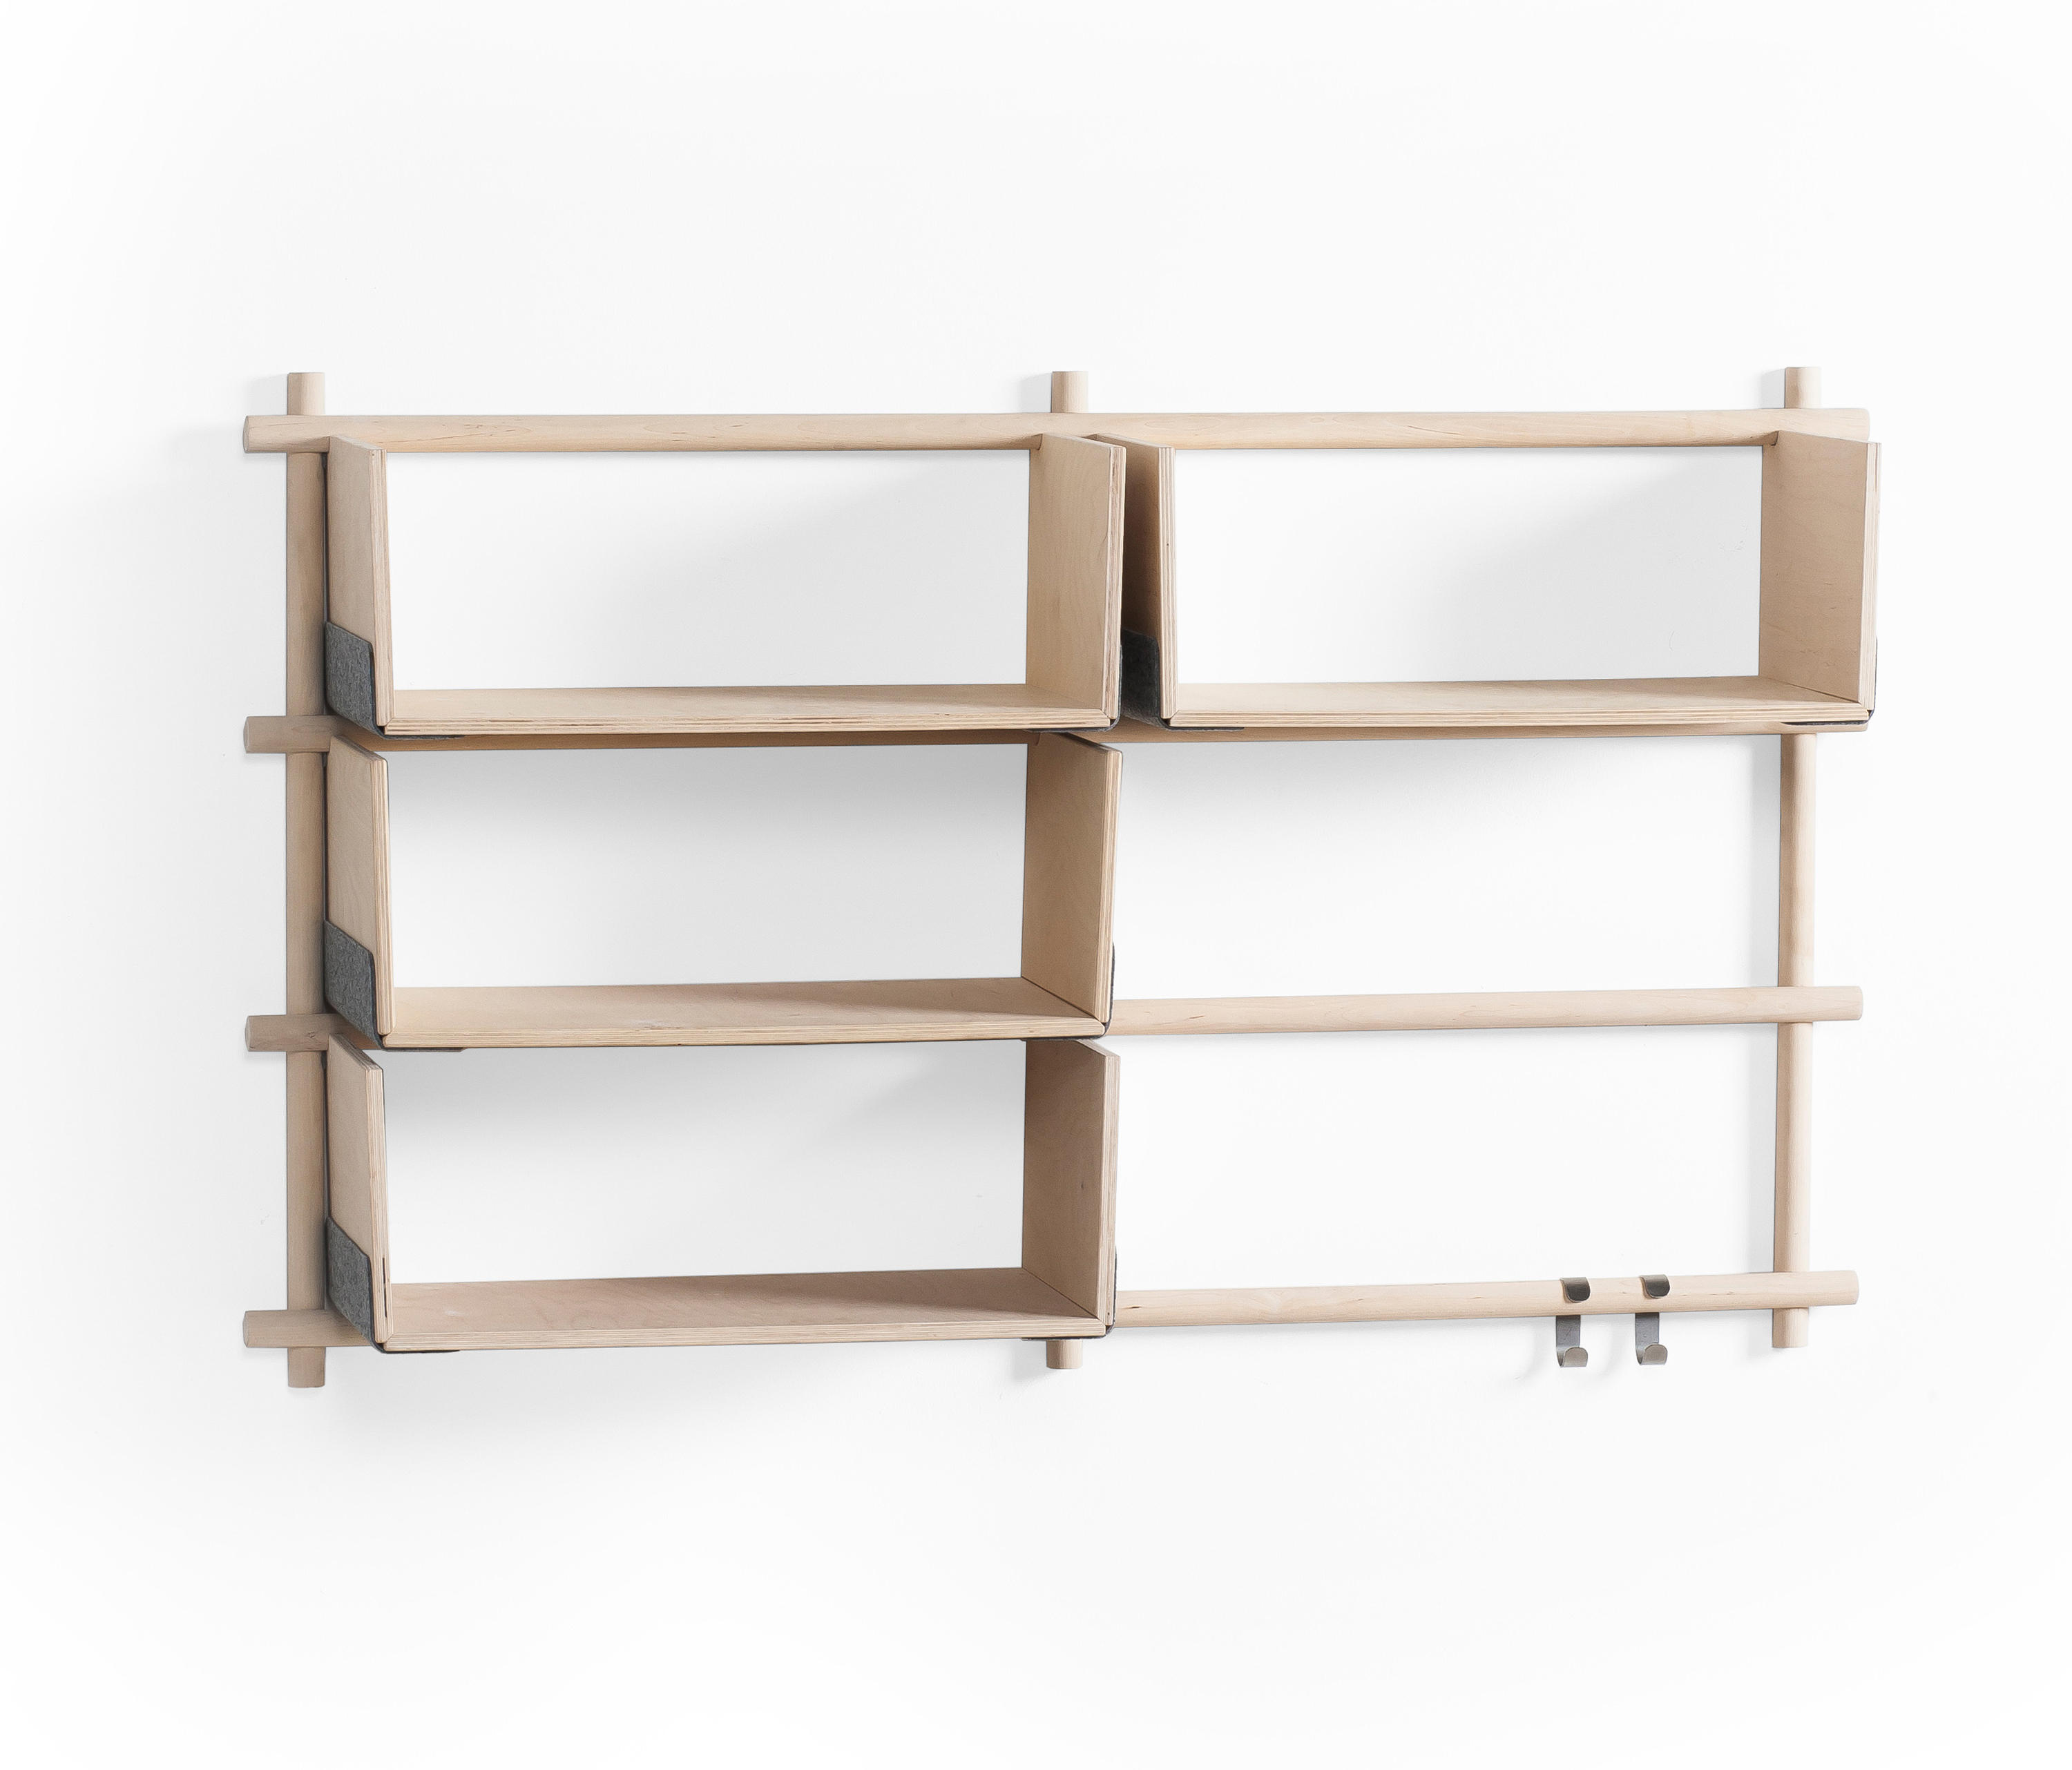 Foldin Fin23 Shelving From Emko Architonic